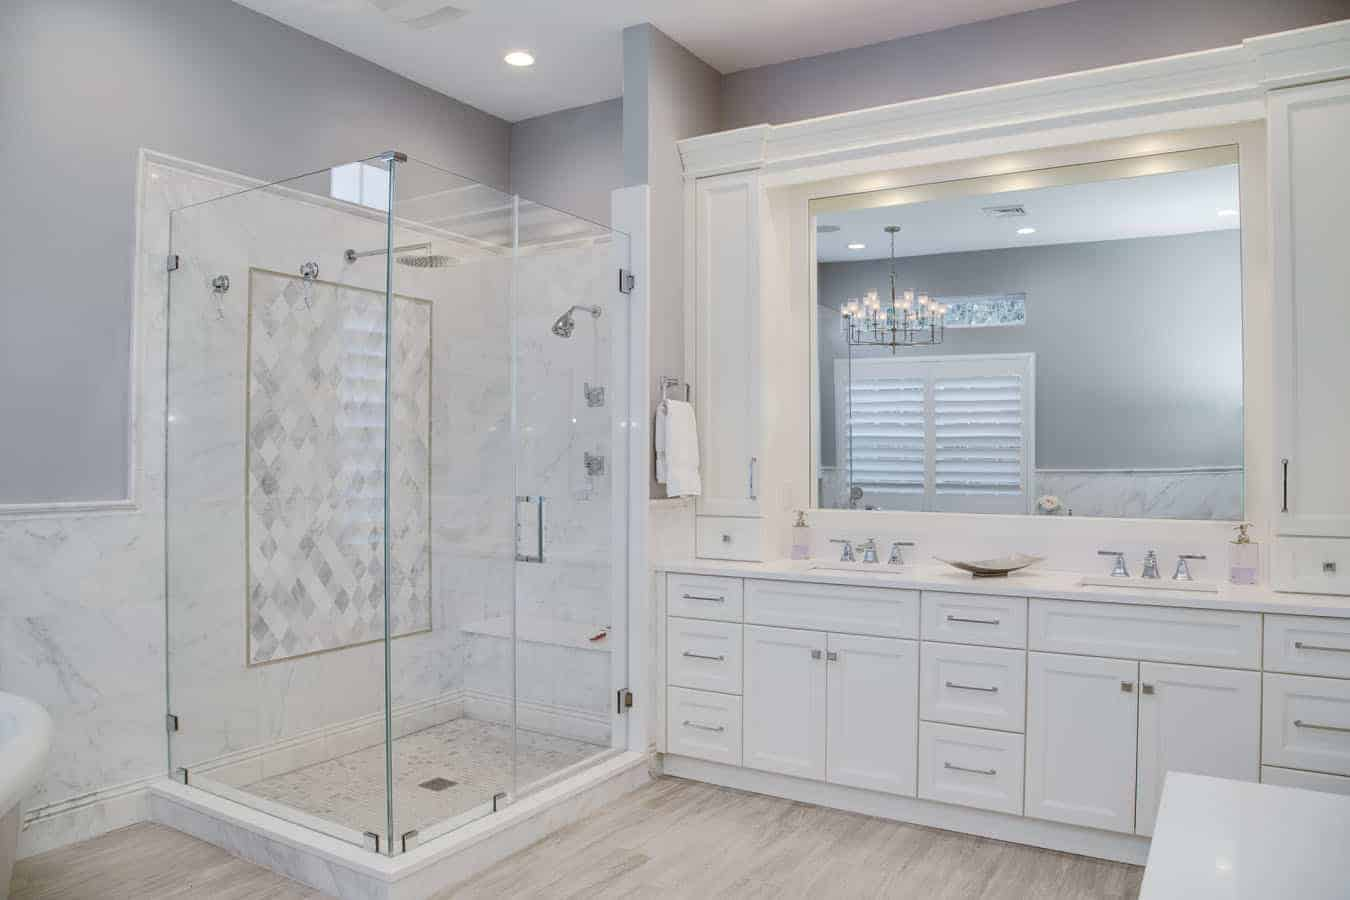 The Villages at Melville Bathroom remodel interior design 3